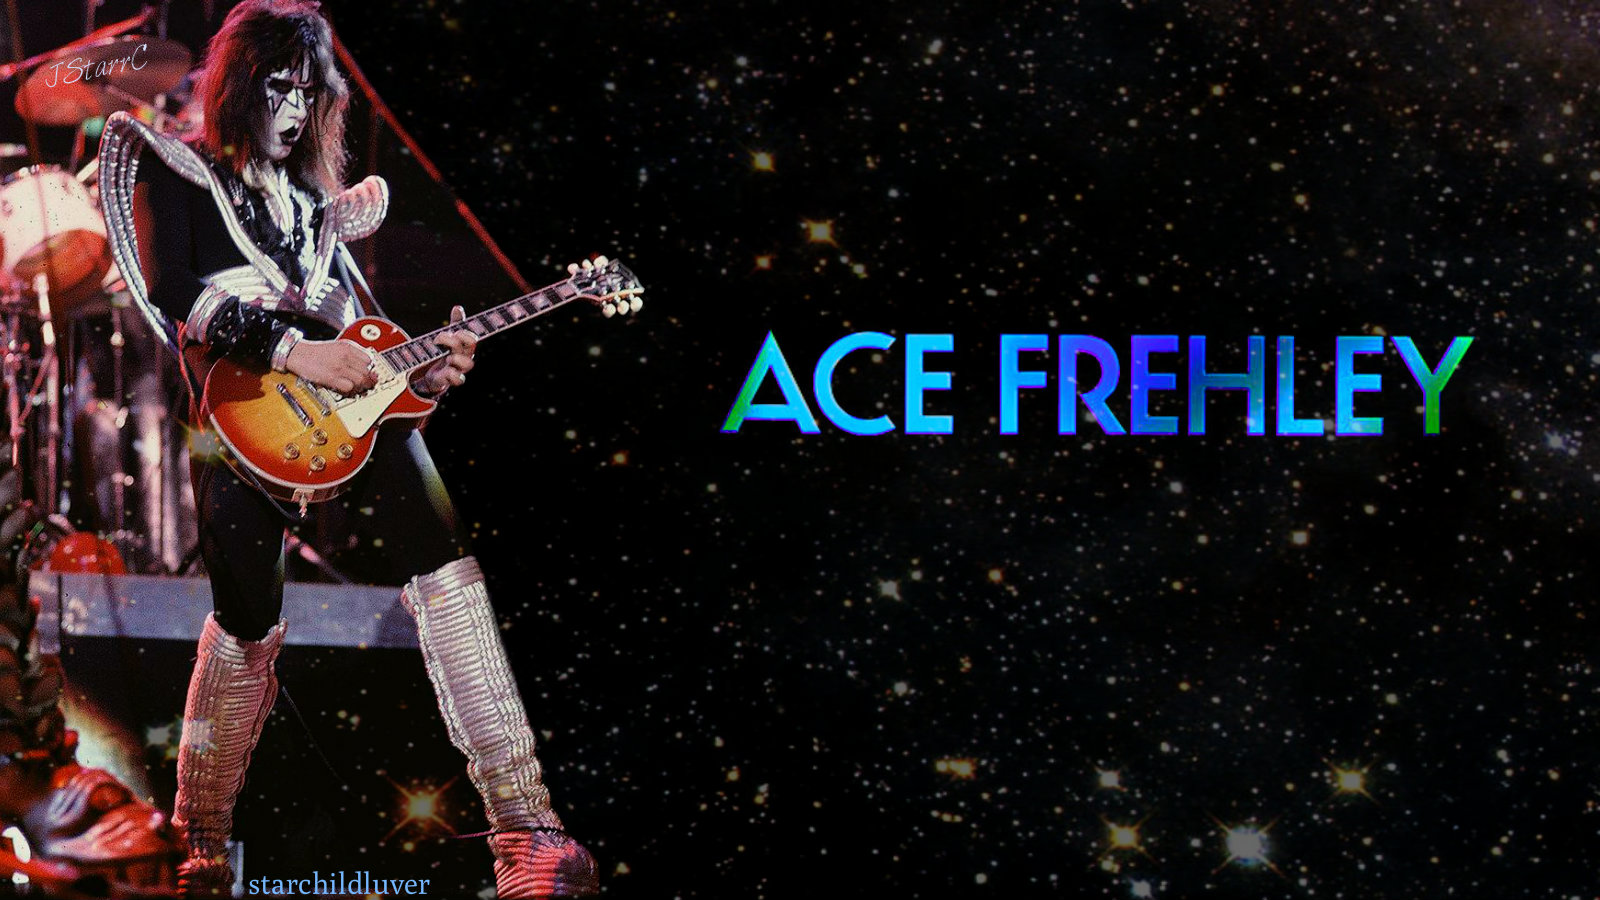 Ace Frehley images Ace Frehley HD wallpaper and background photos ...